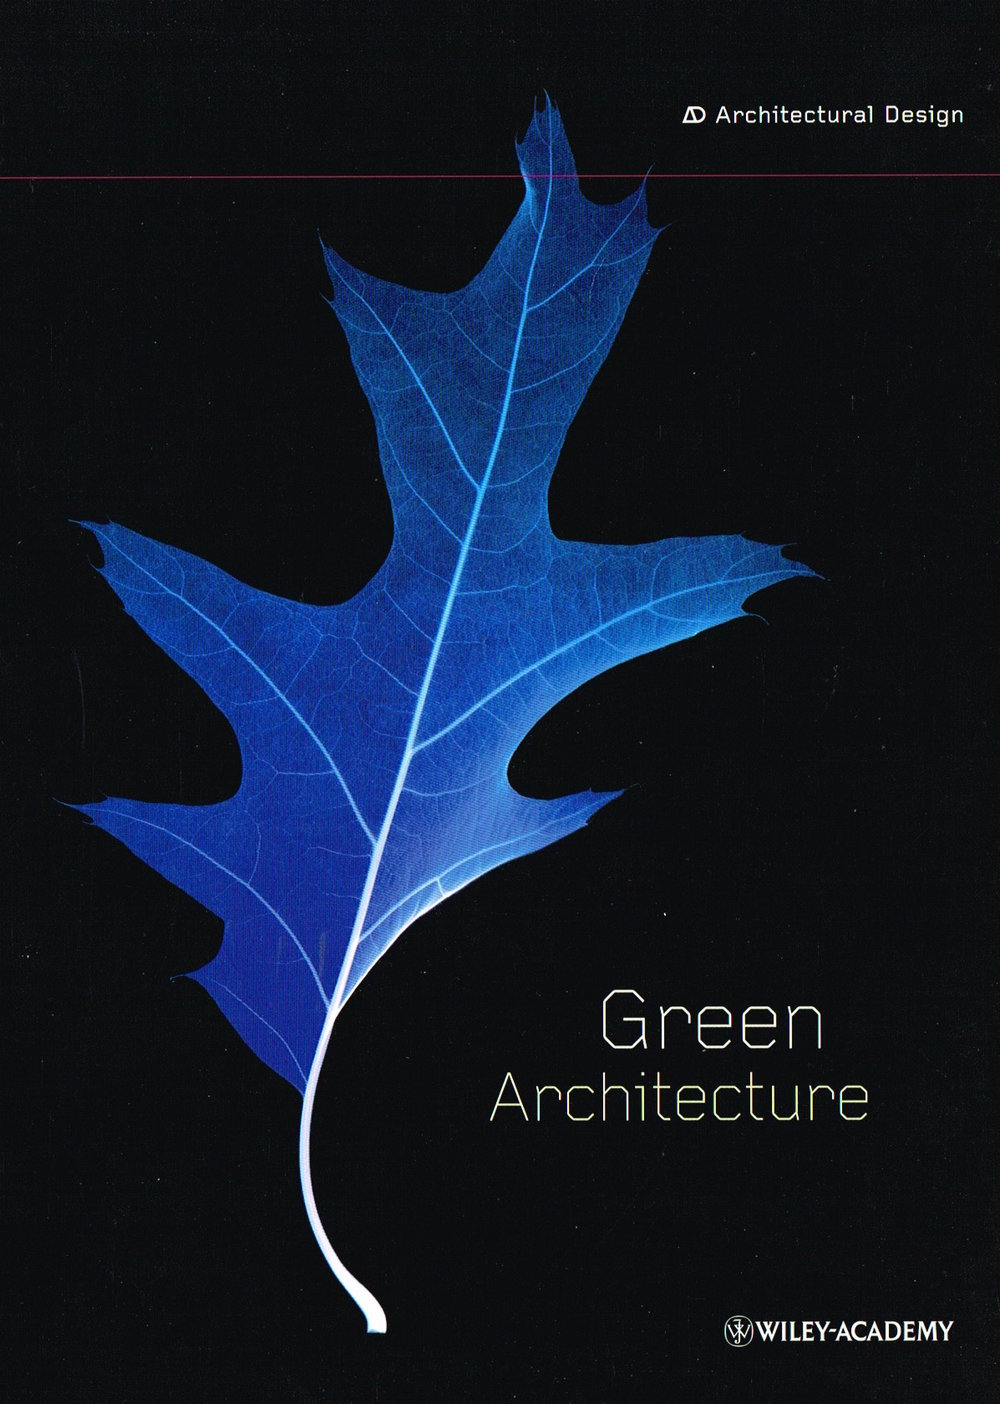 'AD Green Architecture' : Wiley Academy, London, 2001